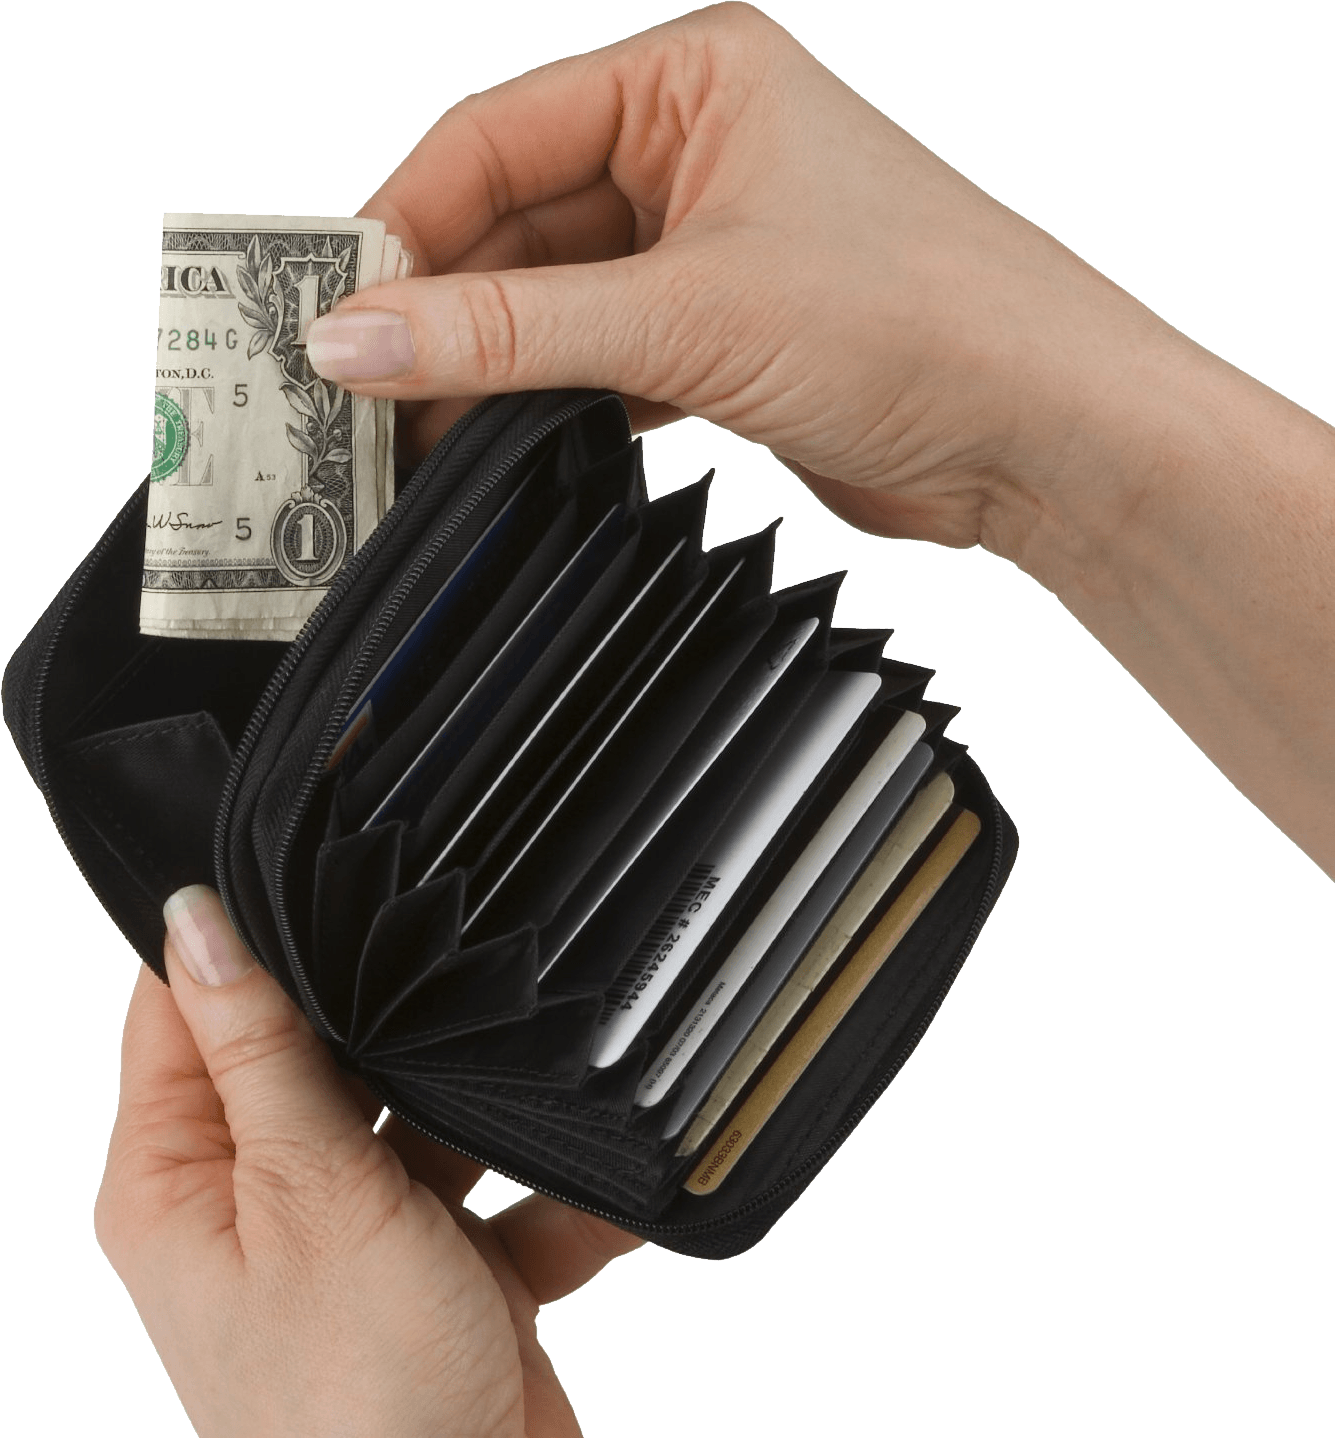 Wallet In Hands Png Image PNG Image